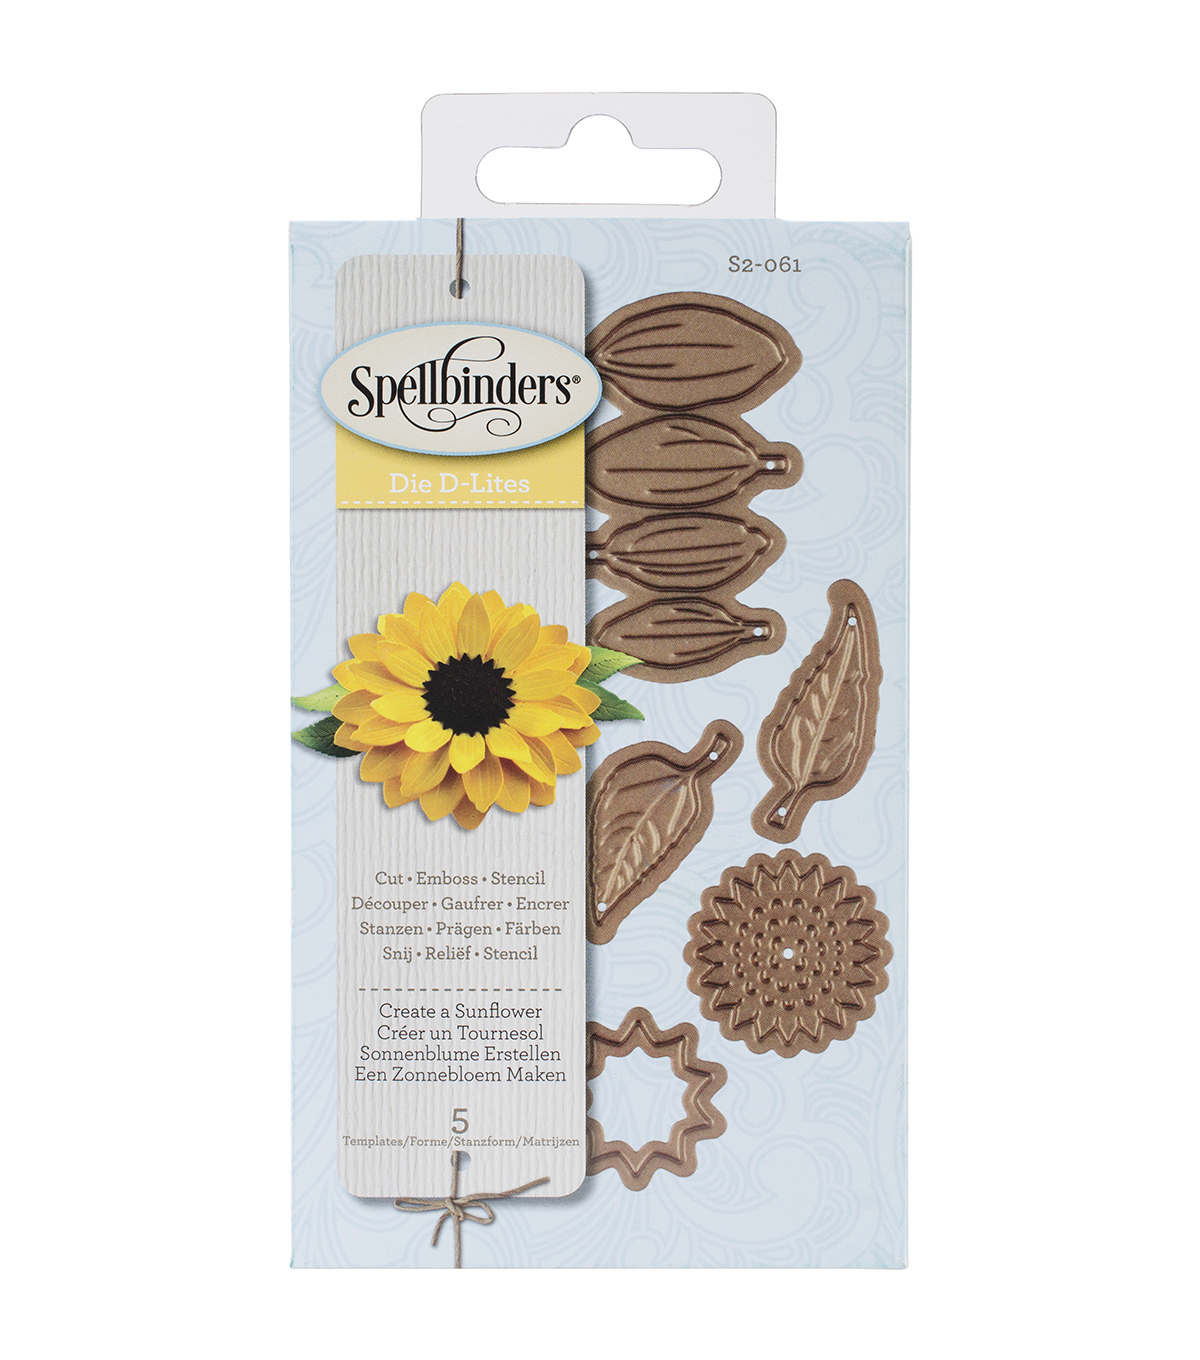 Spellbinders Shapeabilities Die D-Lites-Create A Sunflower